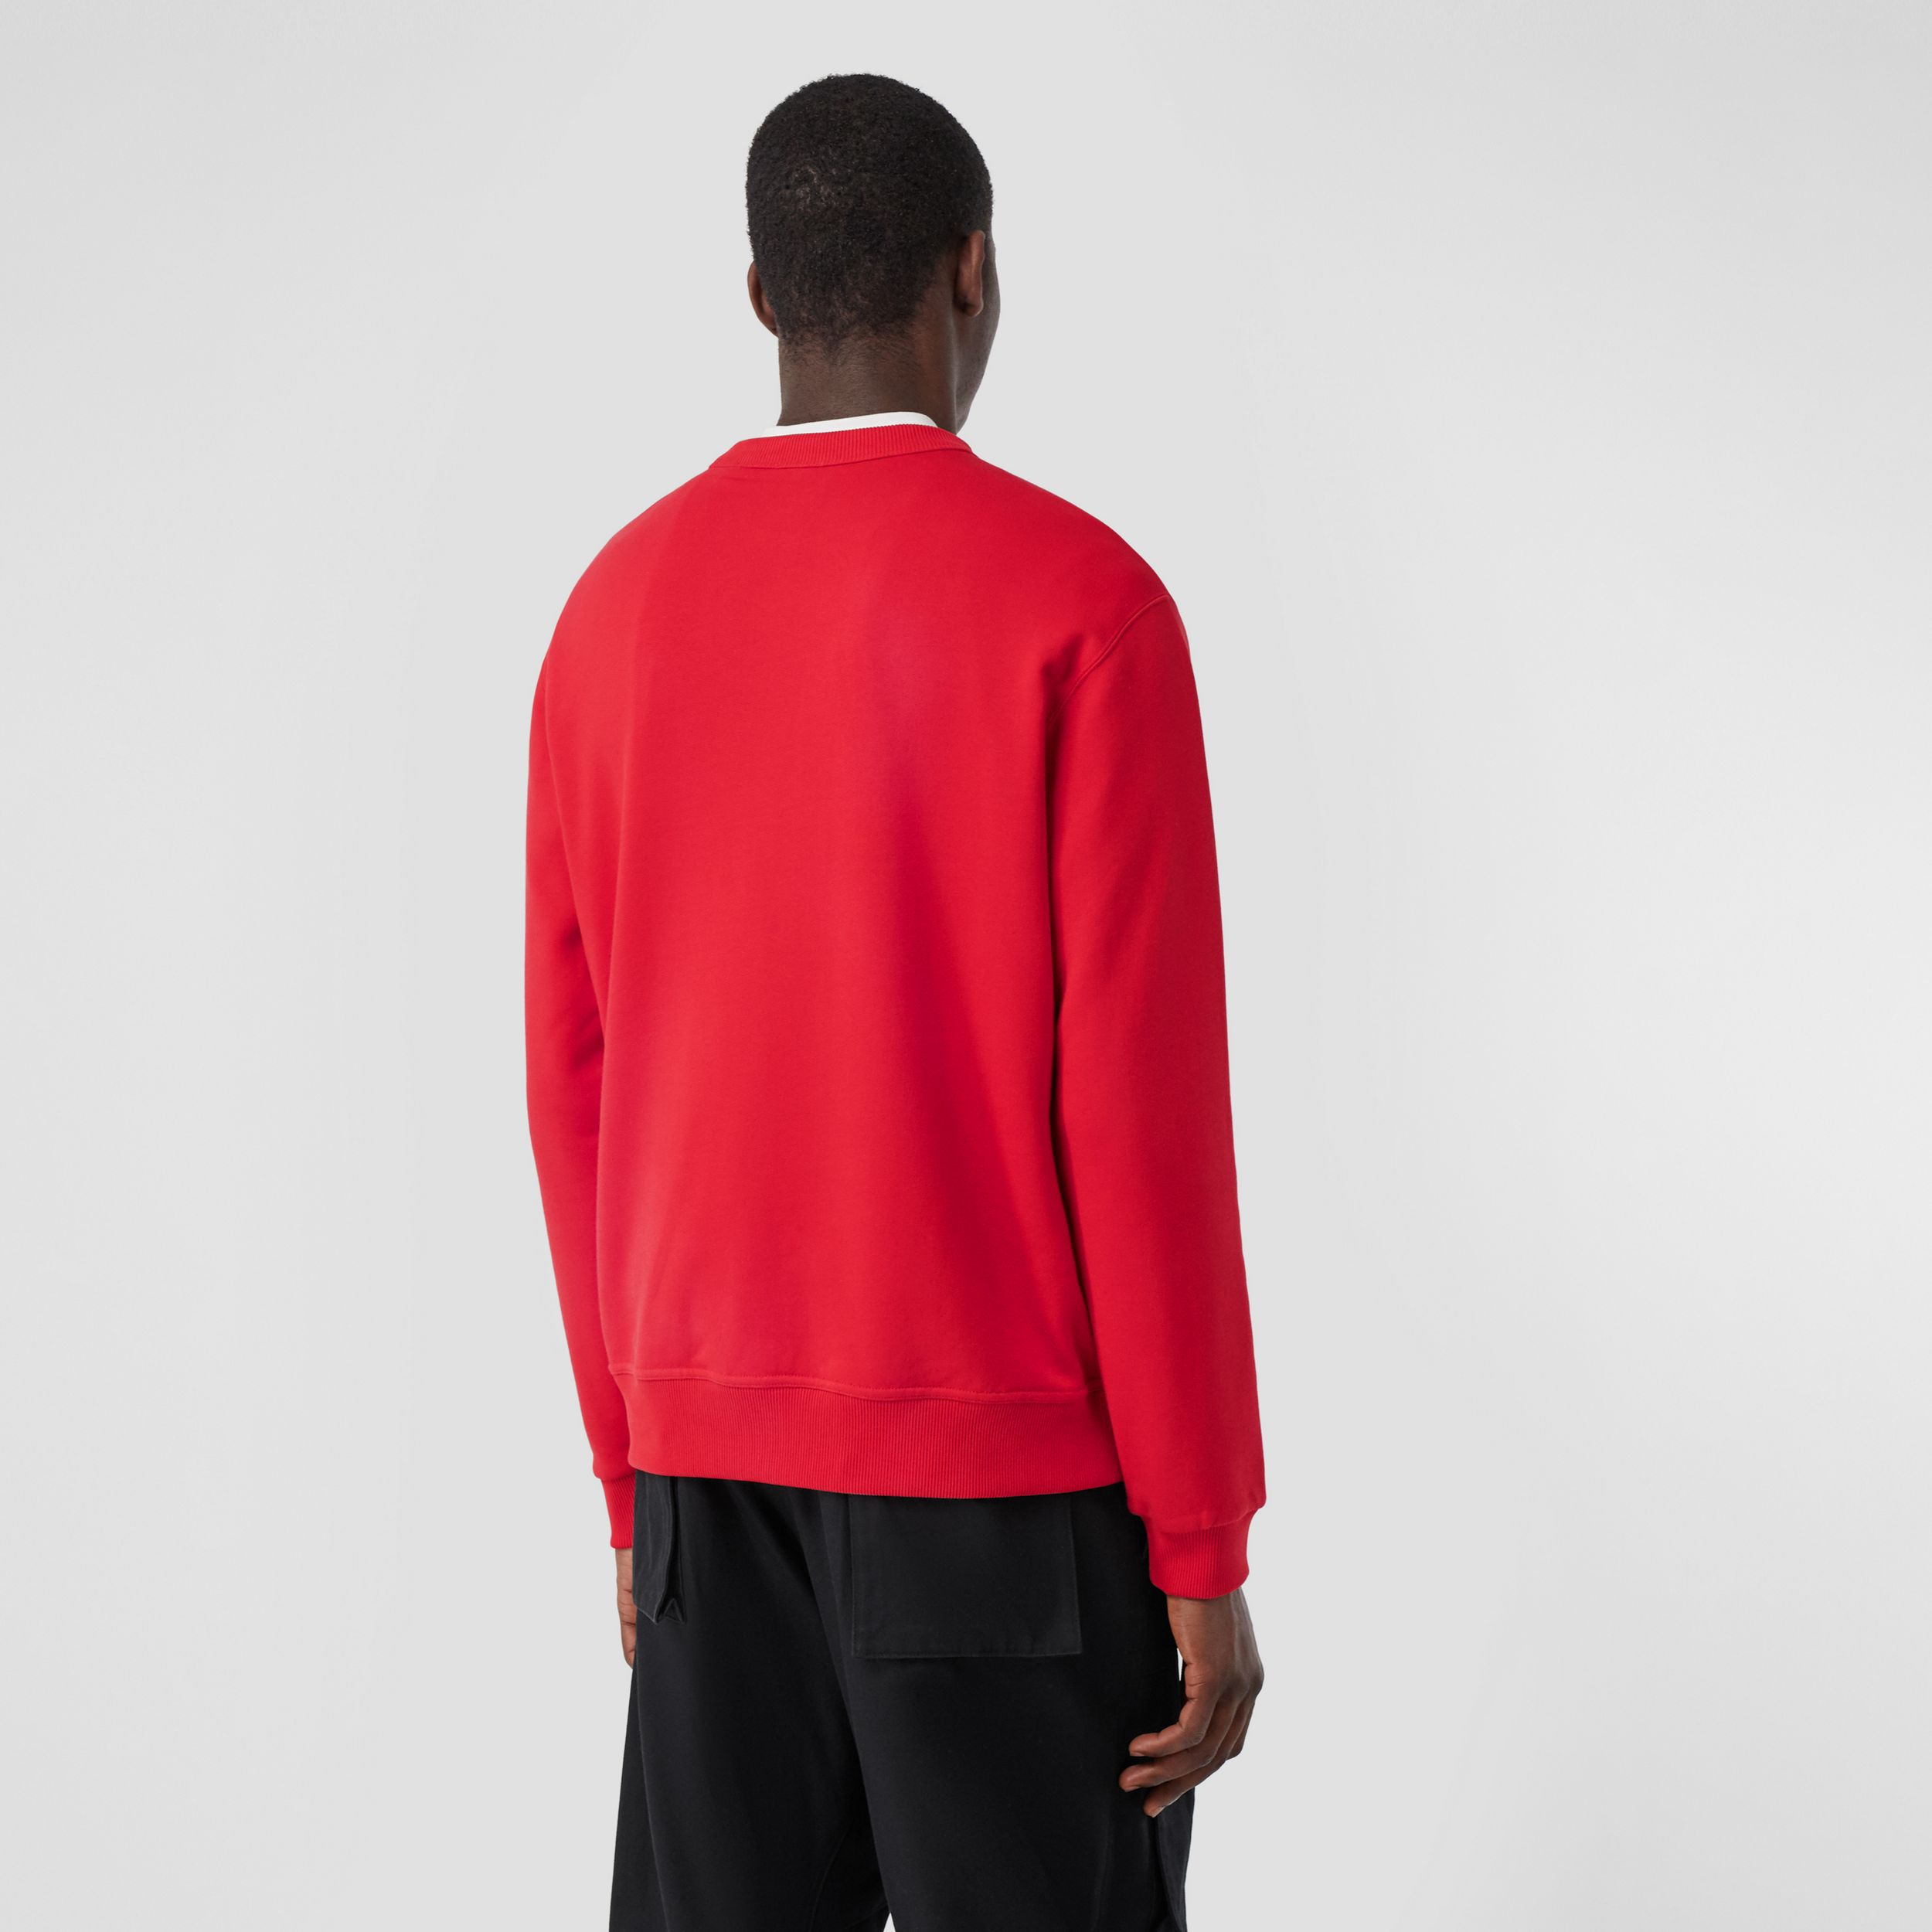 Monogram Motif Cotton Sweatshirt in Bright Red - Men | Burberry - 3